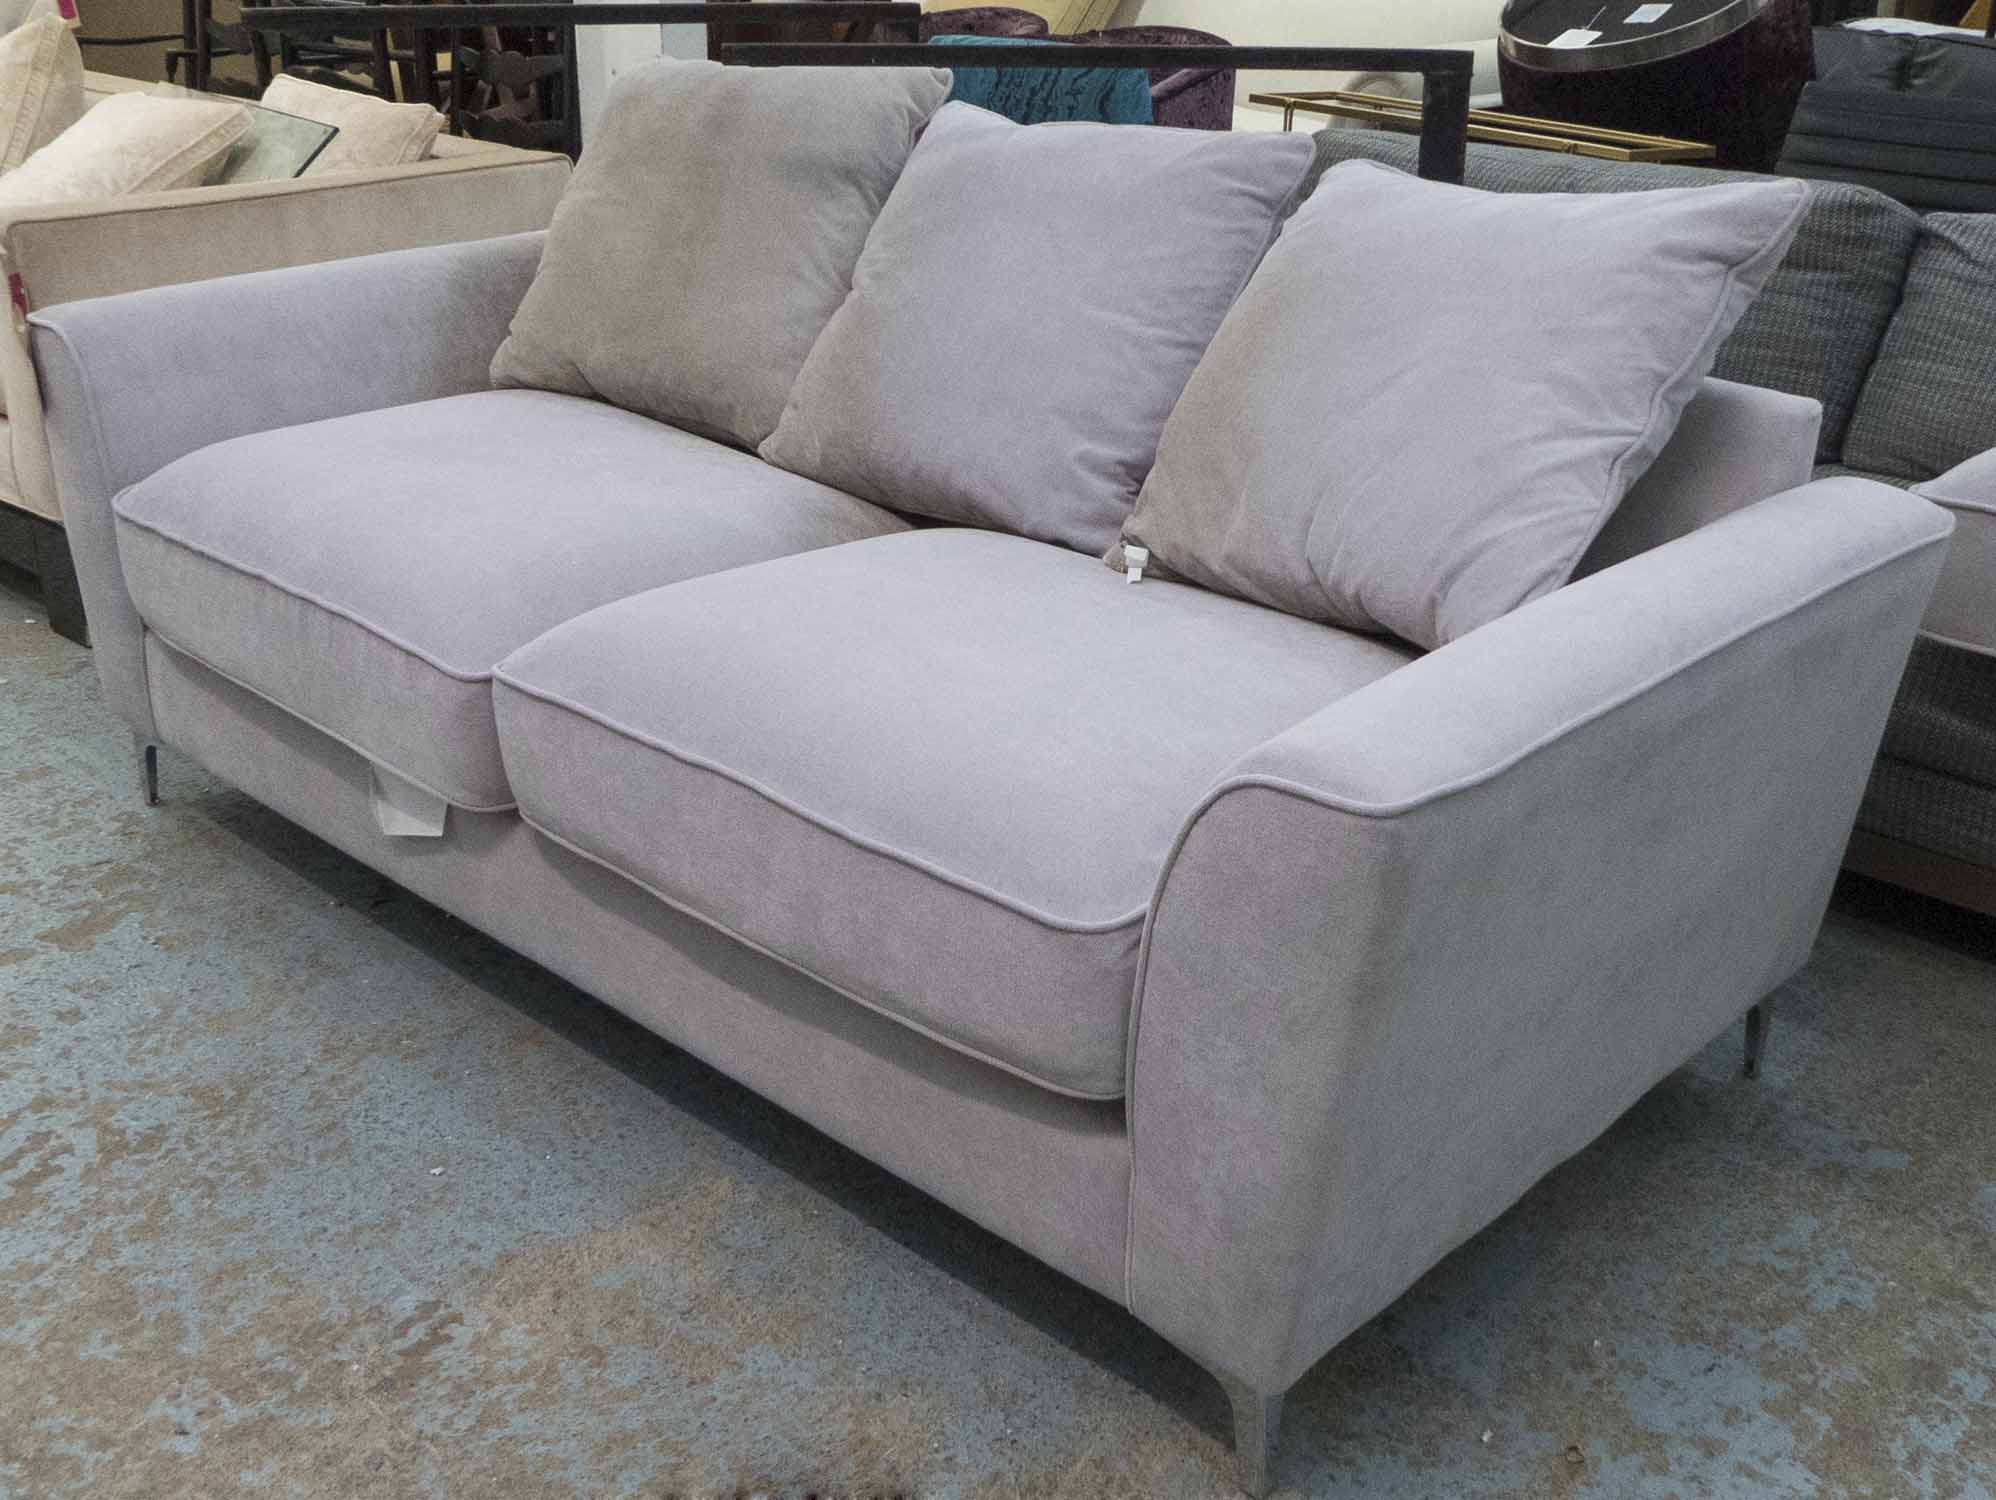 Lot 35 - SOFA, two seater, in grey fabric on chromed metal supports plus three cushions, 205cm L.